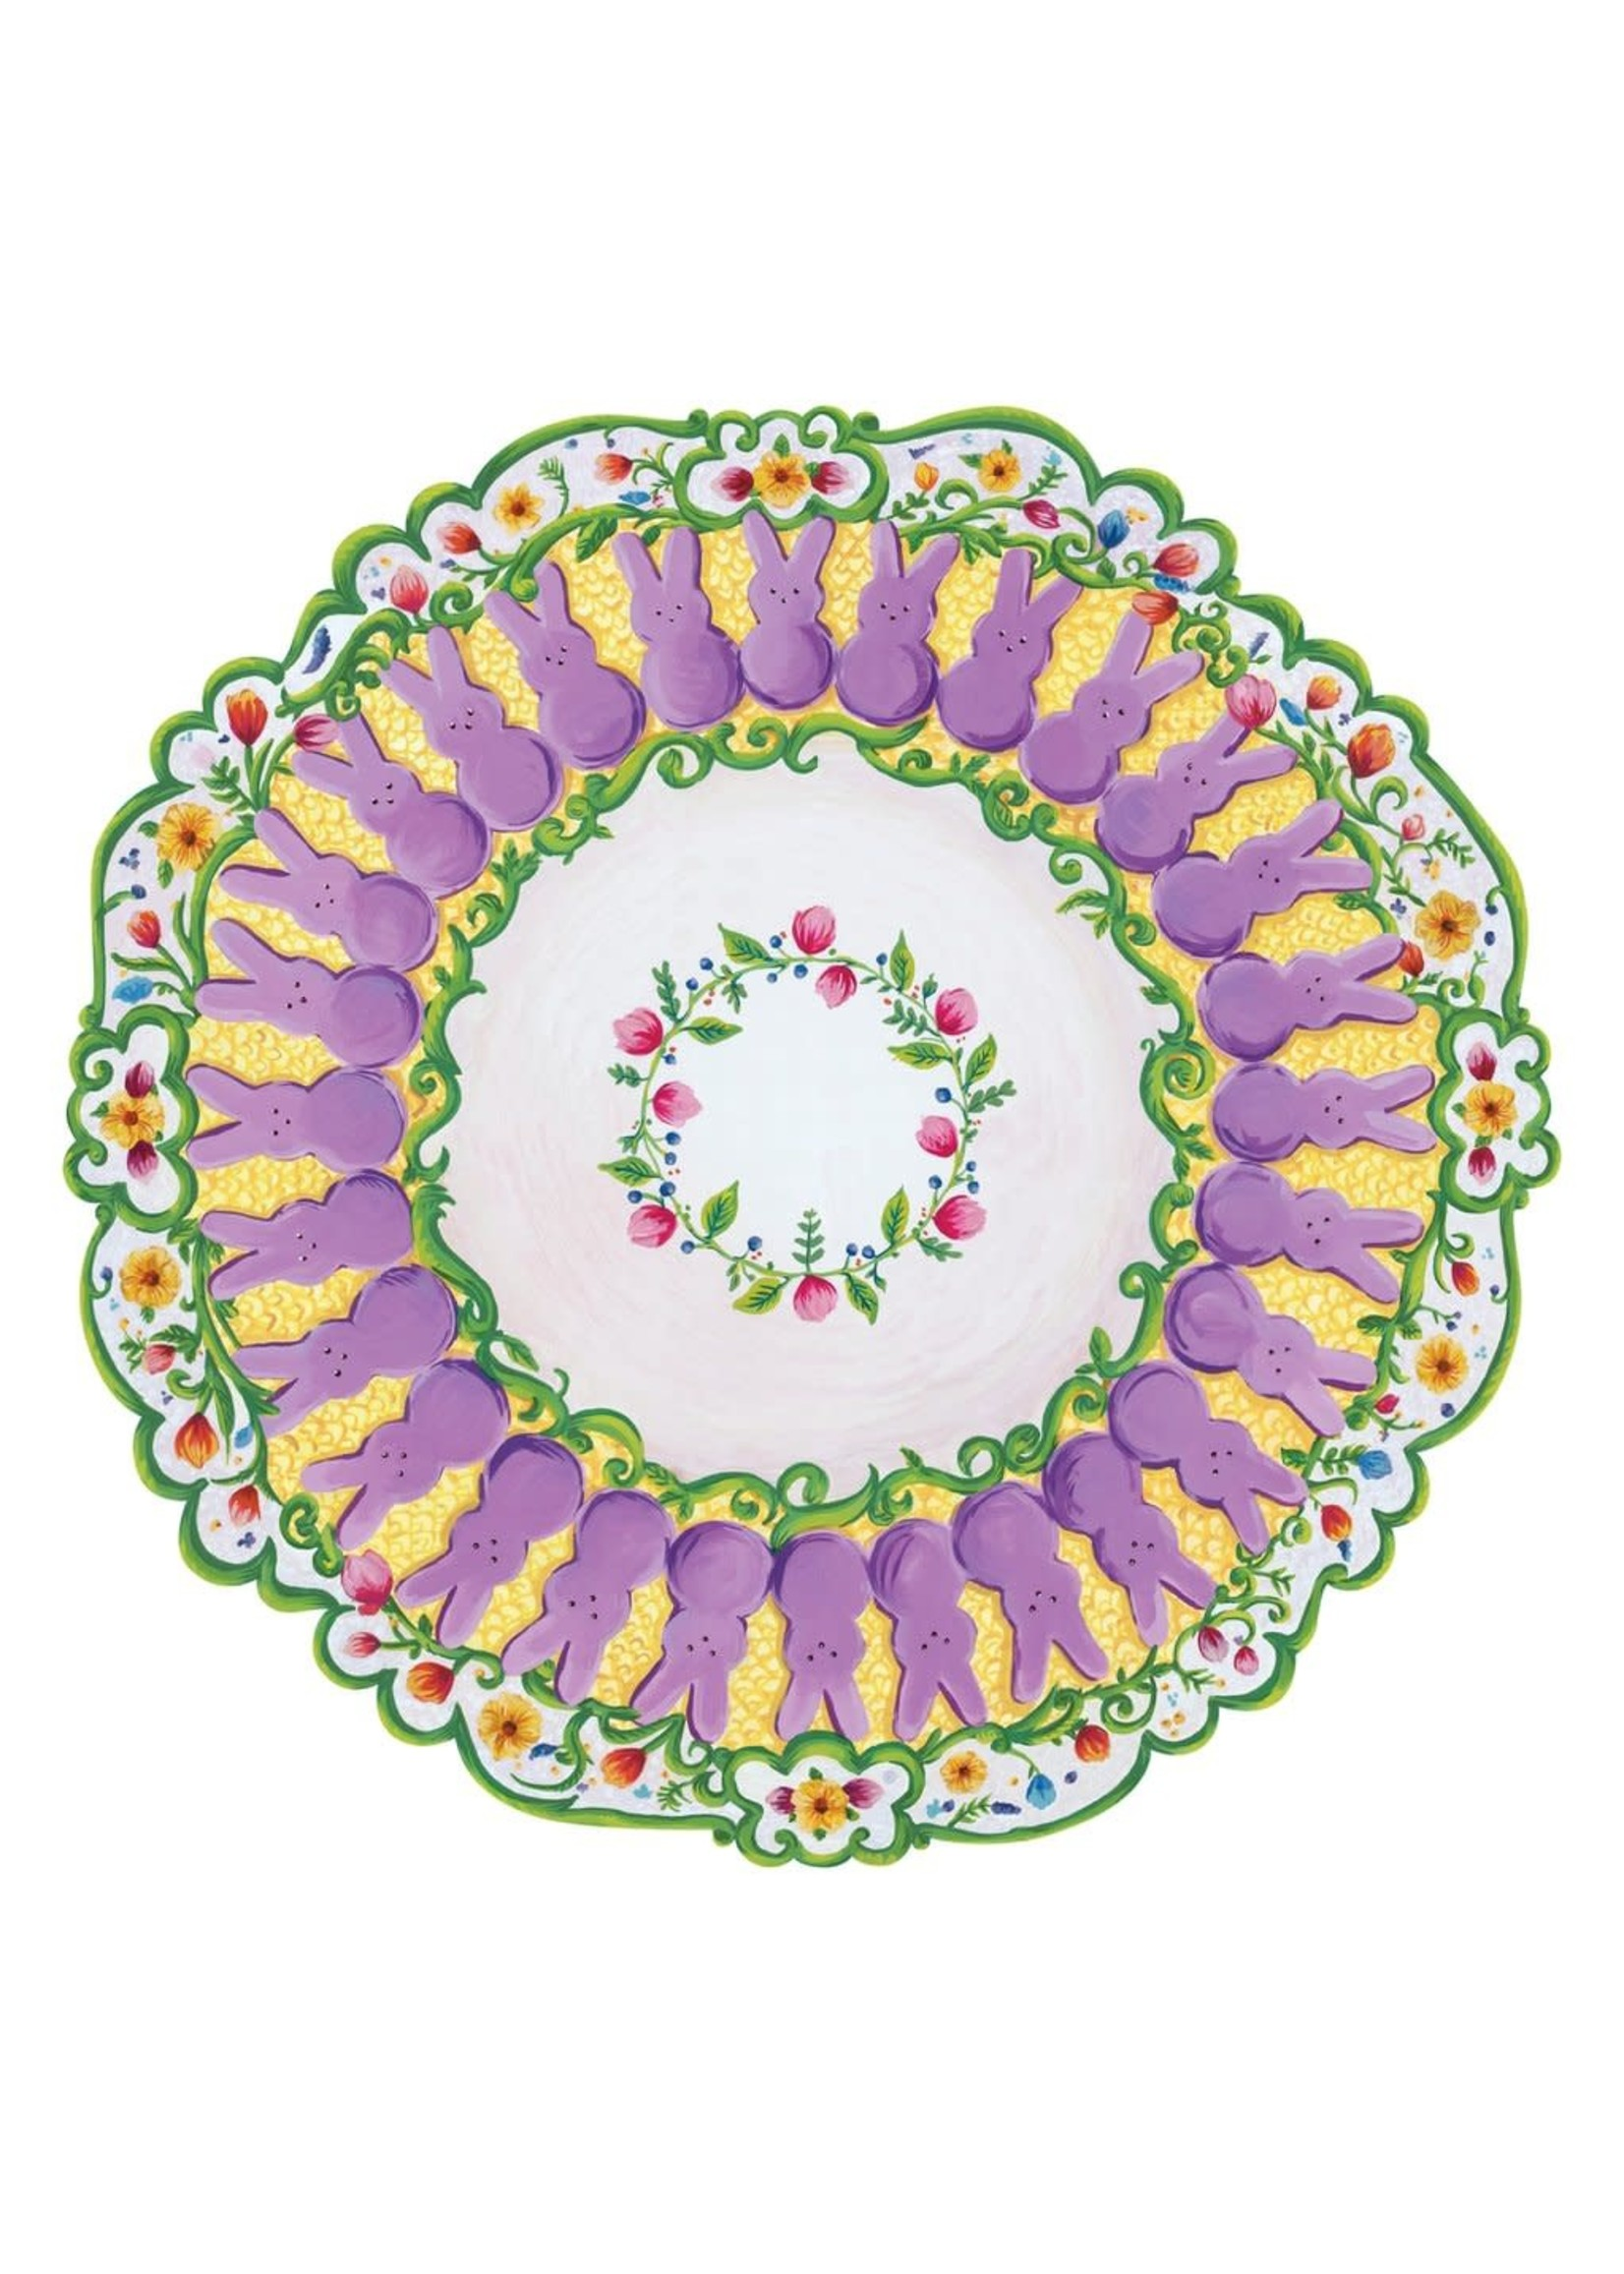 Hester & Cook Paper Placemats - PEEPS China (12 sheets)